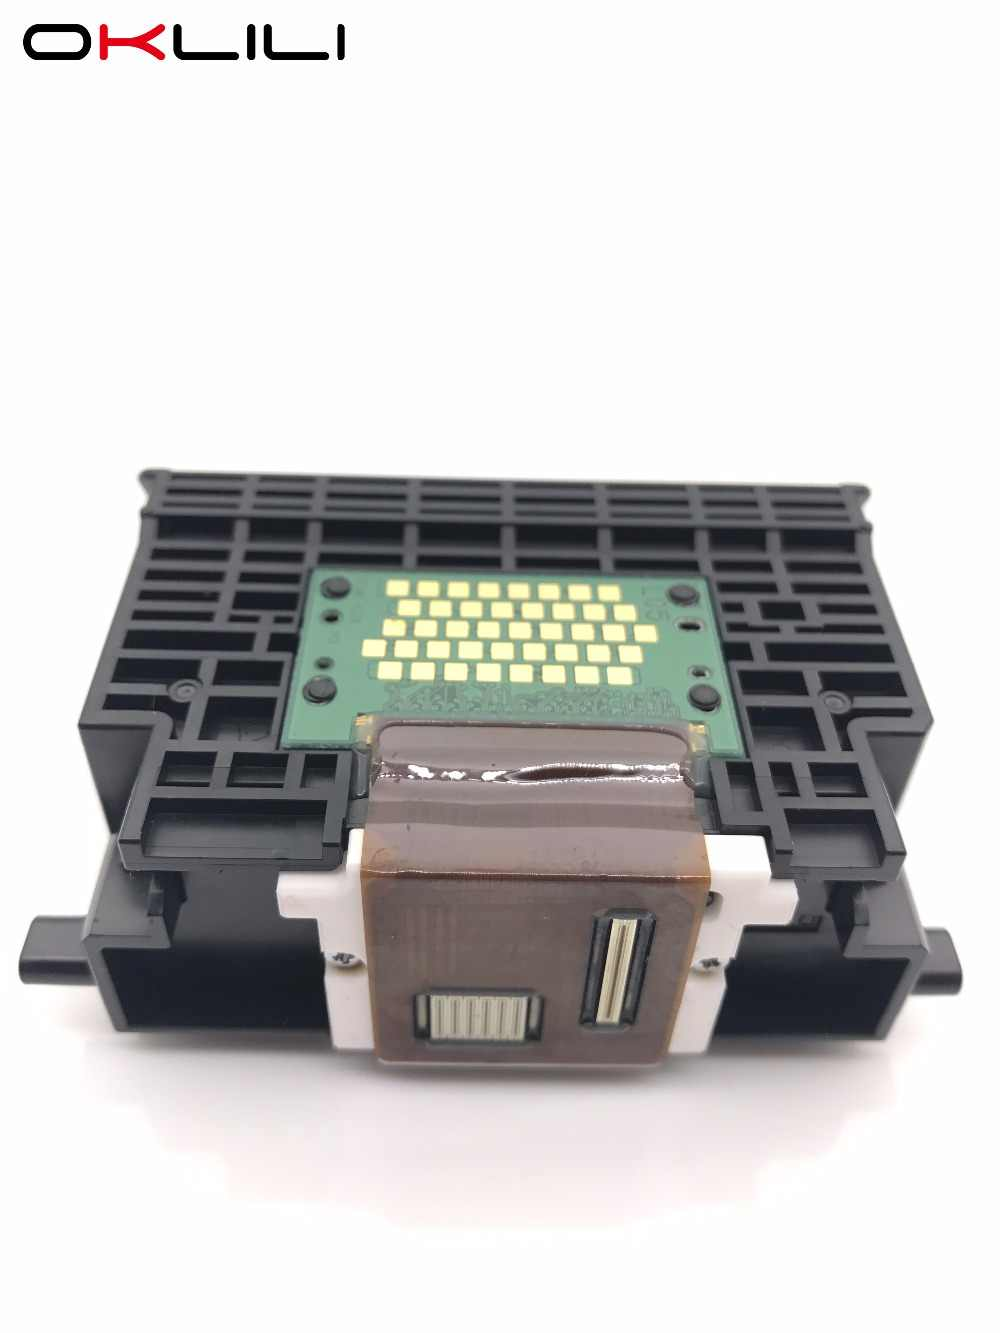 Oklili Asli QY6-0059 QY6-0059-000 Printhead Print Head Printer Kepala untuk Canon IP4200 MP500 MP530